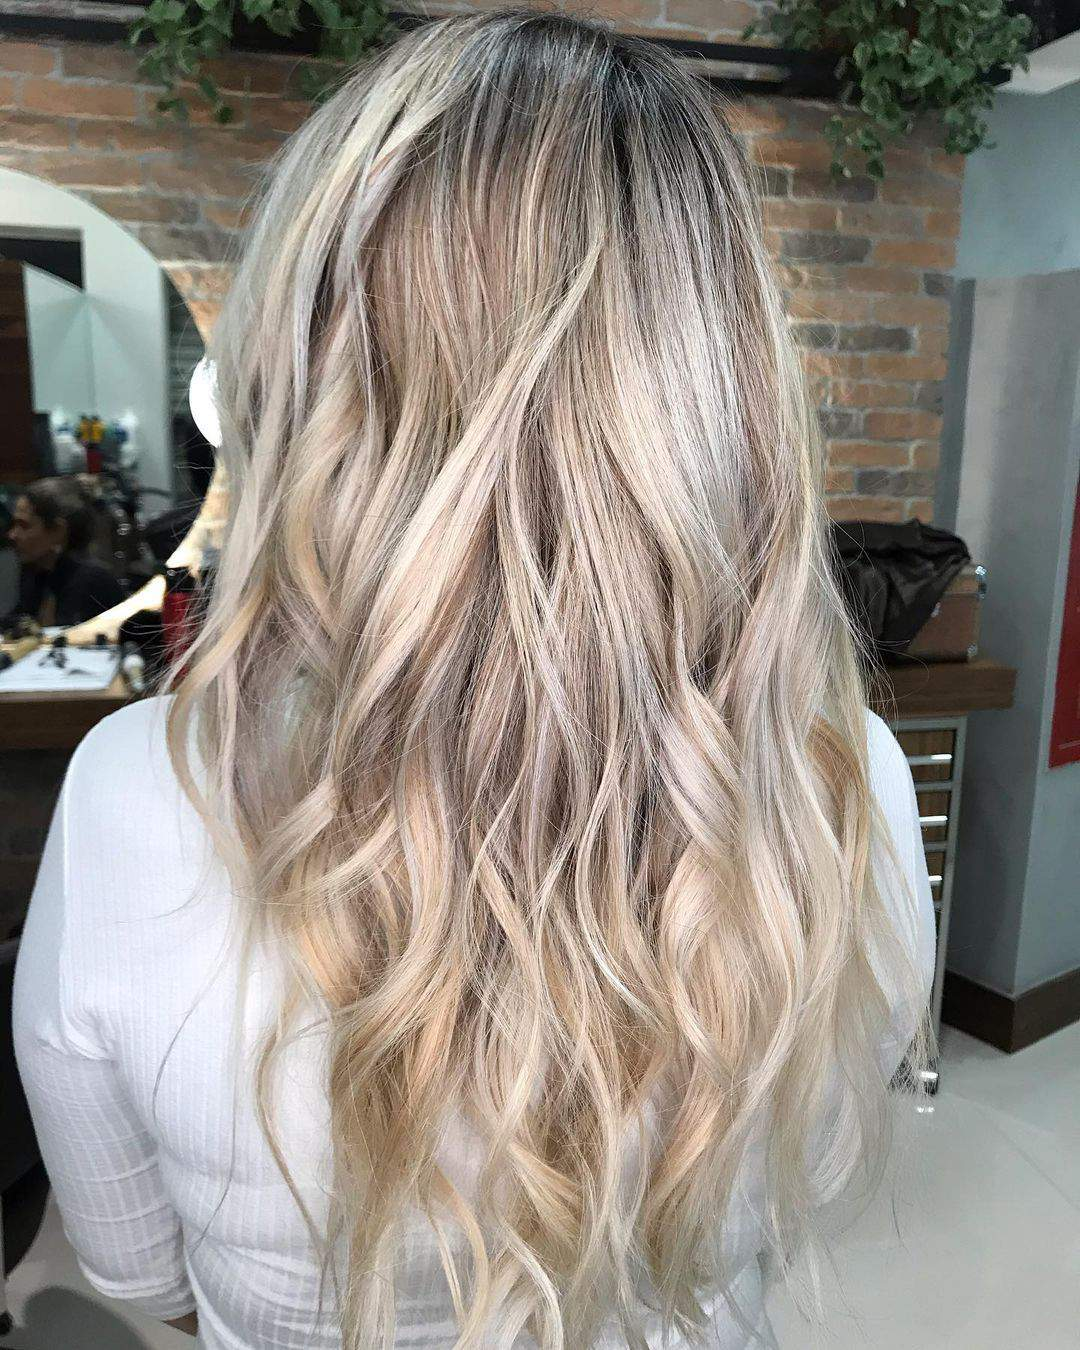 40+ Awesome Hairstyles For Girls With Long Hair images 37